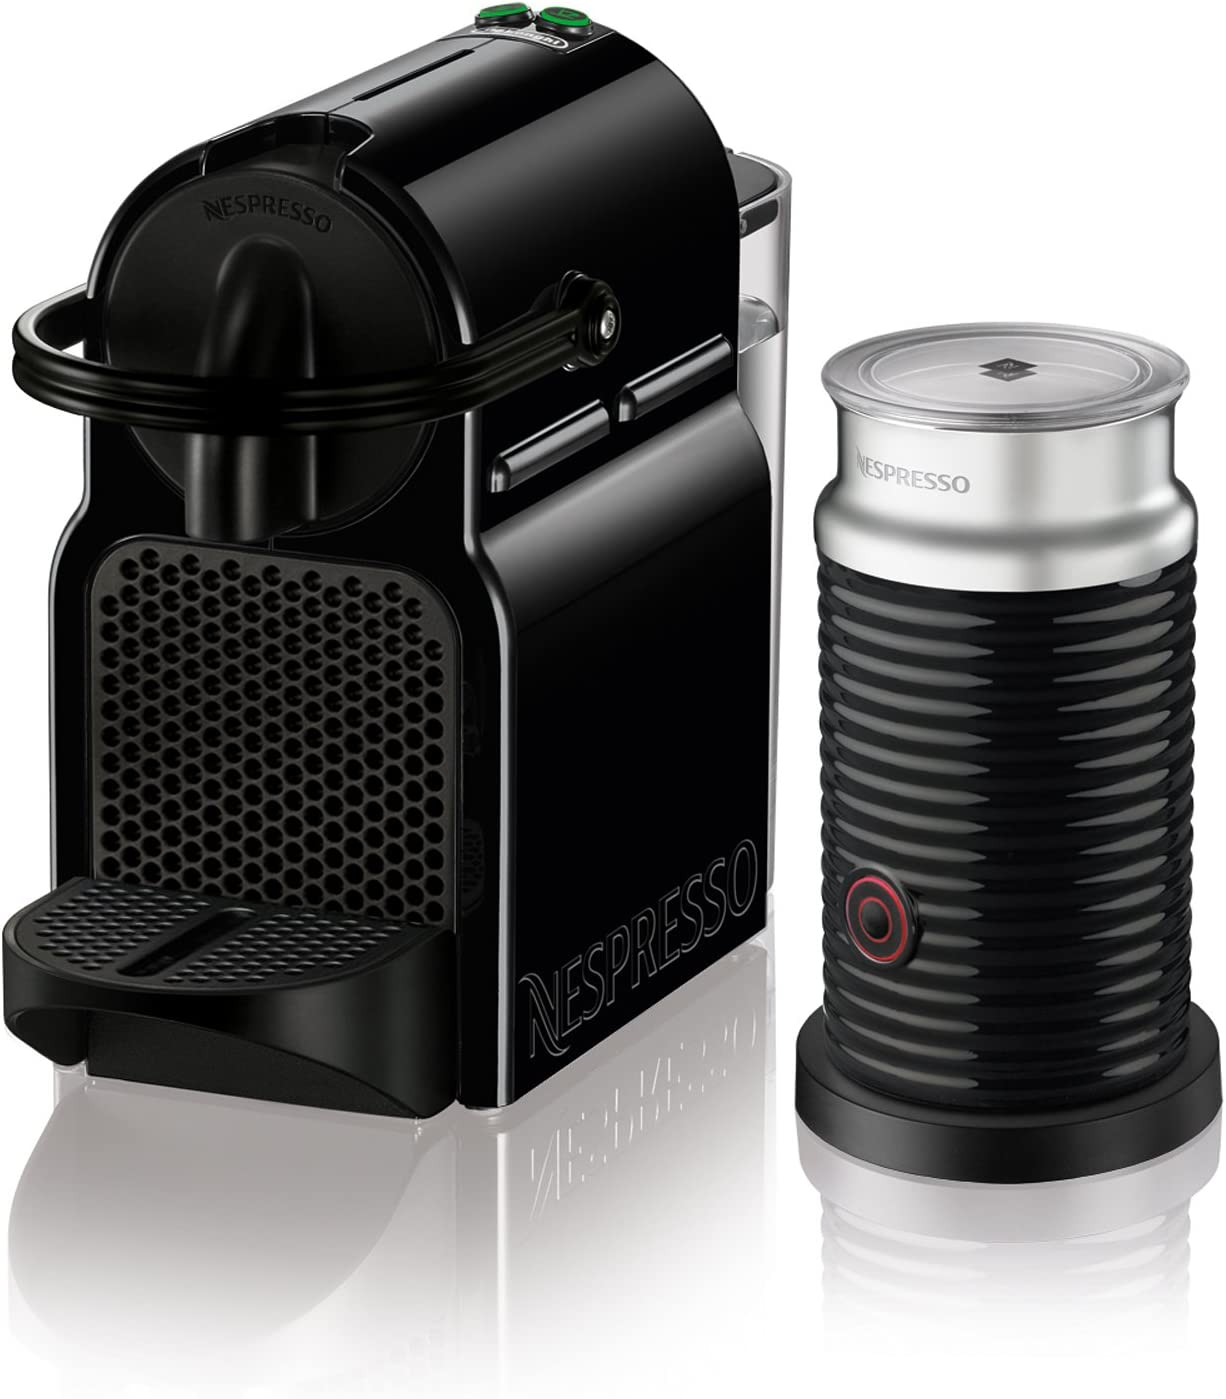 Nespresso Inissia Original Espresso Machine with Aeroccino Milk Frother - capsule machine Amazon